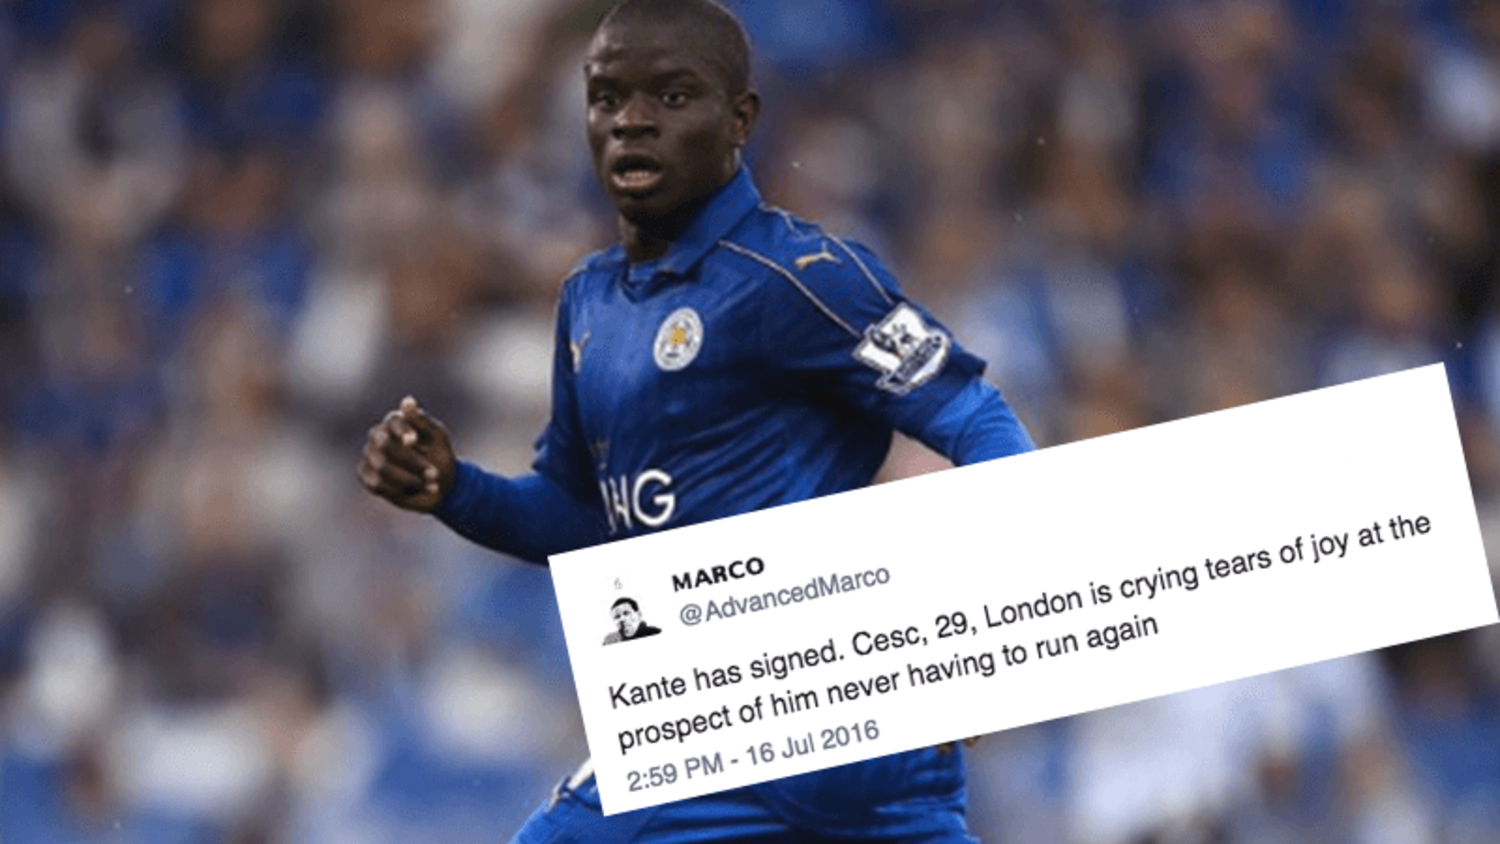 How the internet reacted to Chelsea's capture of N'Golo Kante